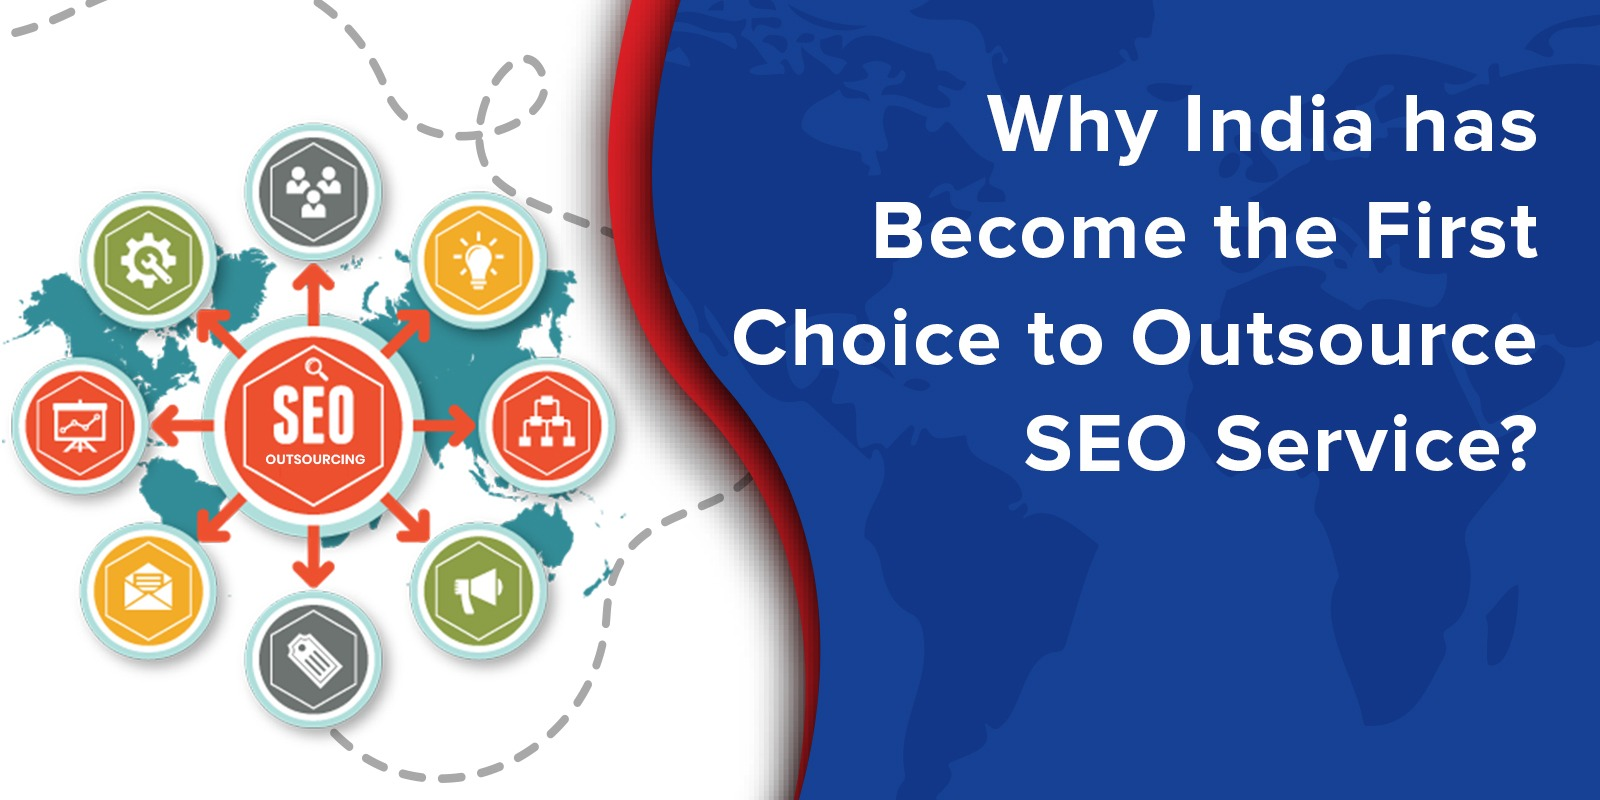 Why India has Become the First Choice to Outsource SEO Service?